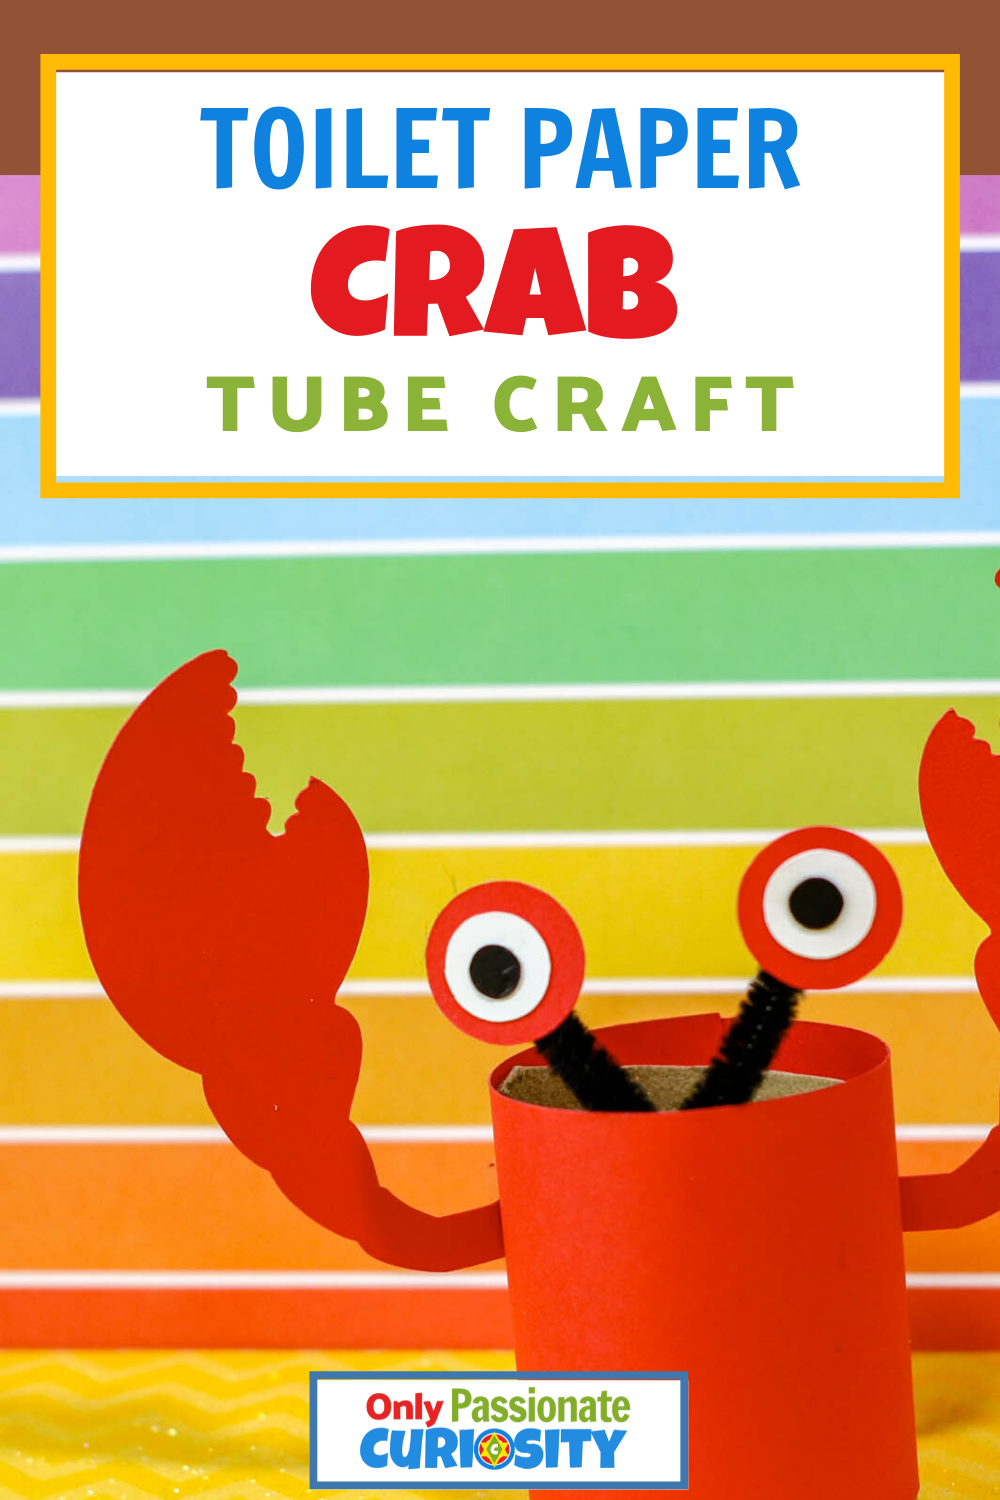 Crab Toilet Paper Tube Craft - Only Passionate Curiosity -6517